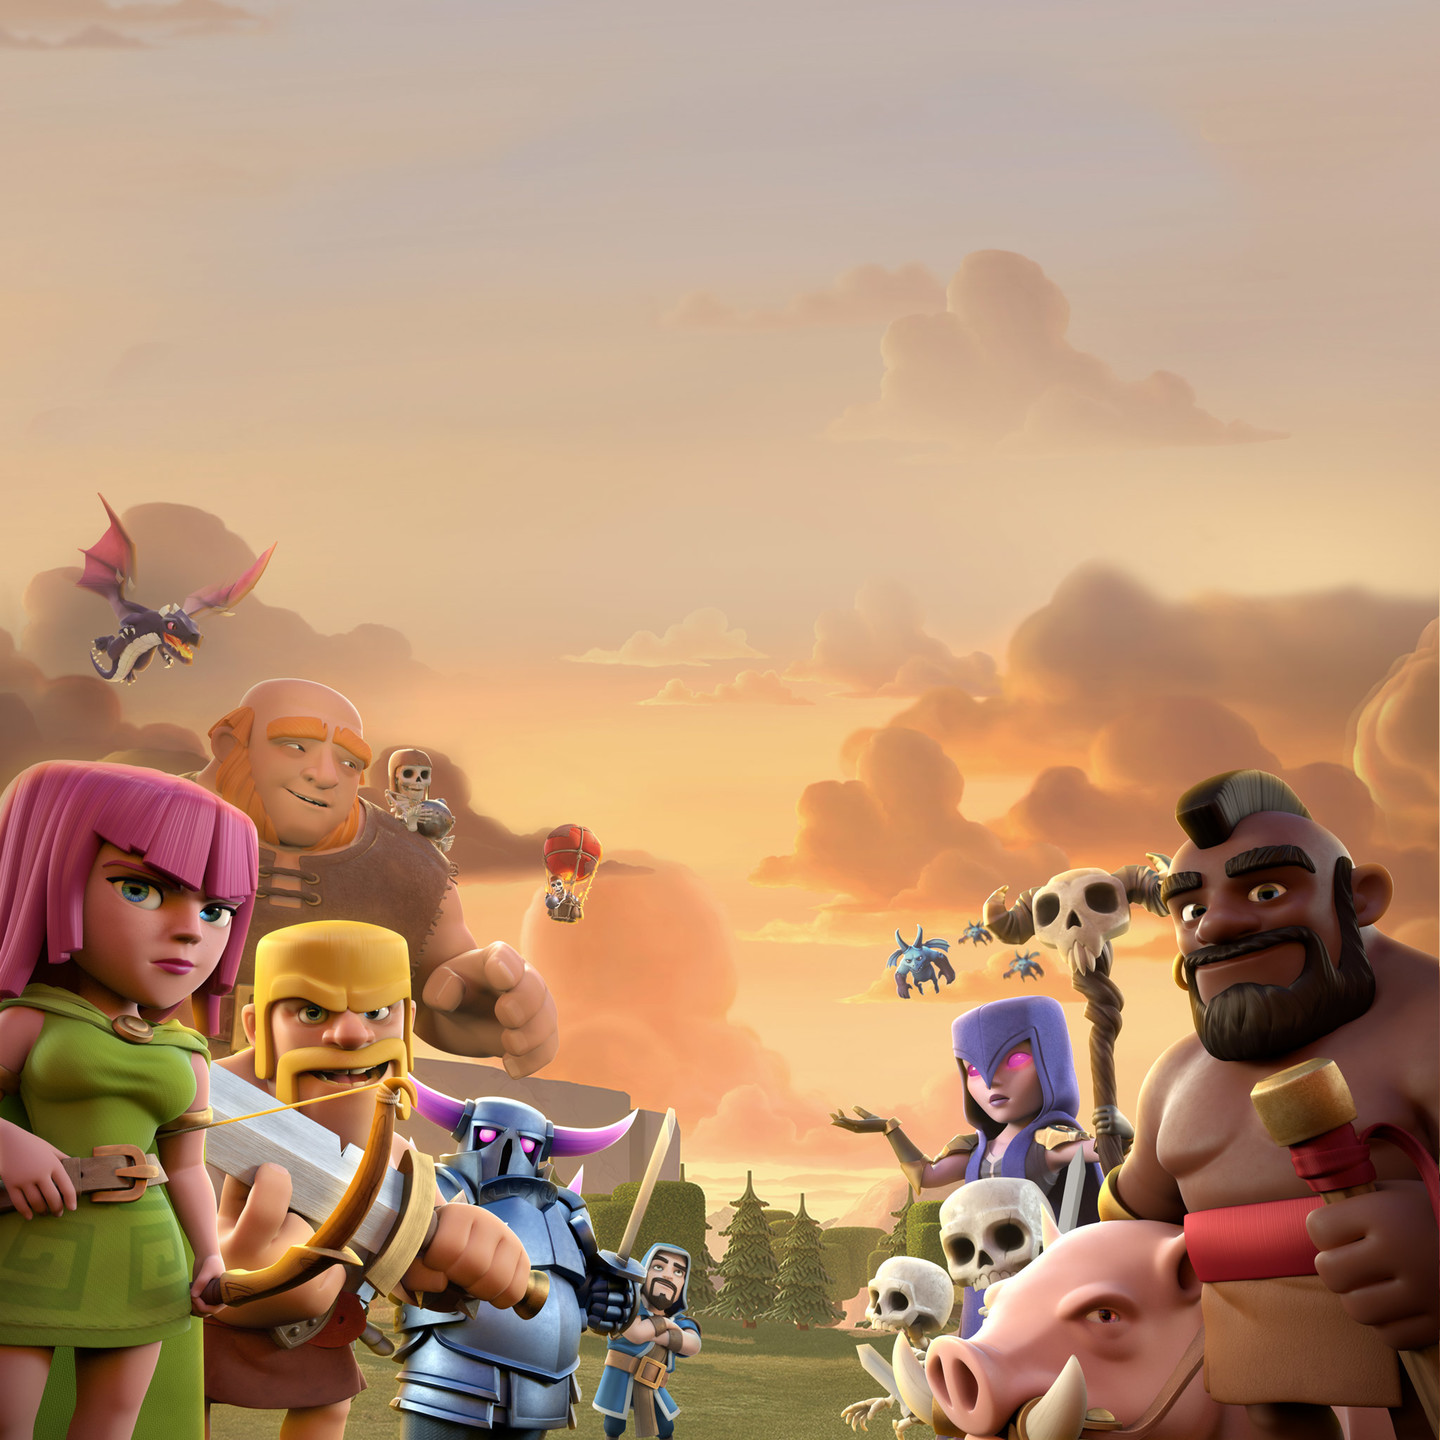 100 Clash Of Clans Is This Image Hair Png Clash Of Clans